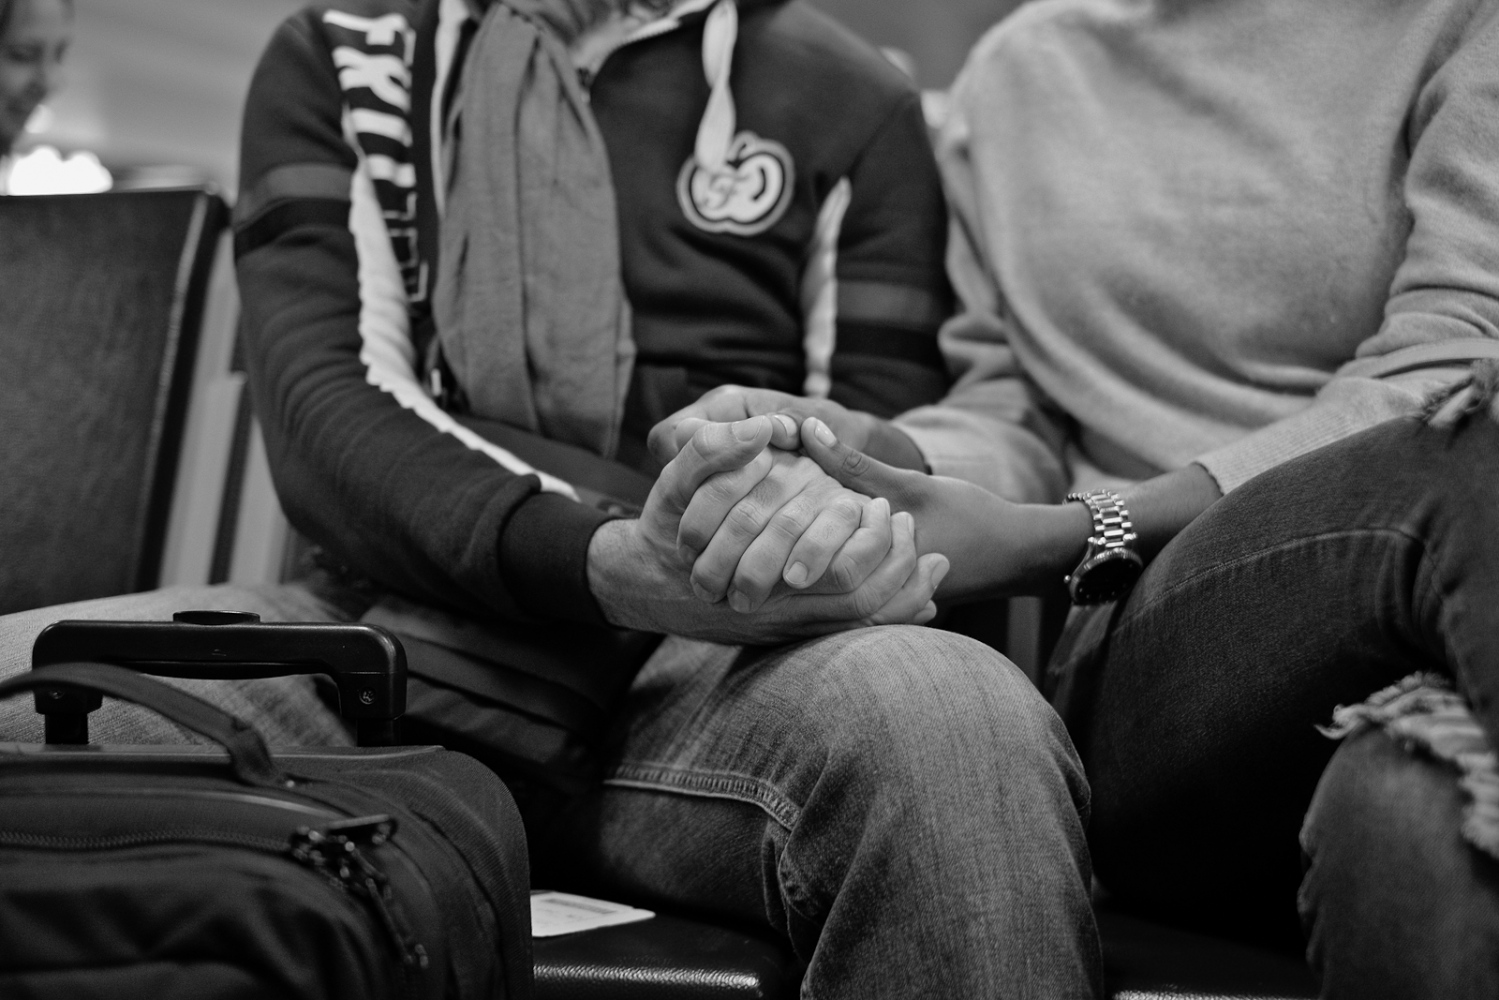 Hopes. At the airport, in Santo Domingo, a young couple sat in front me, they clear appear in love, just what I am expecting in my reencounter with Martha, my wife in Argentina.